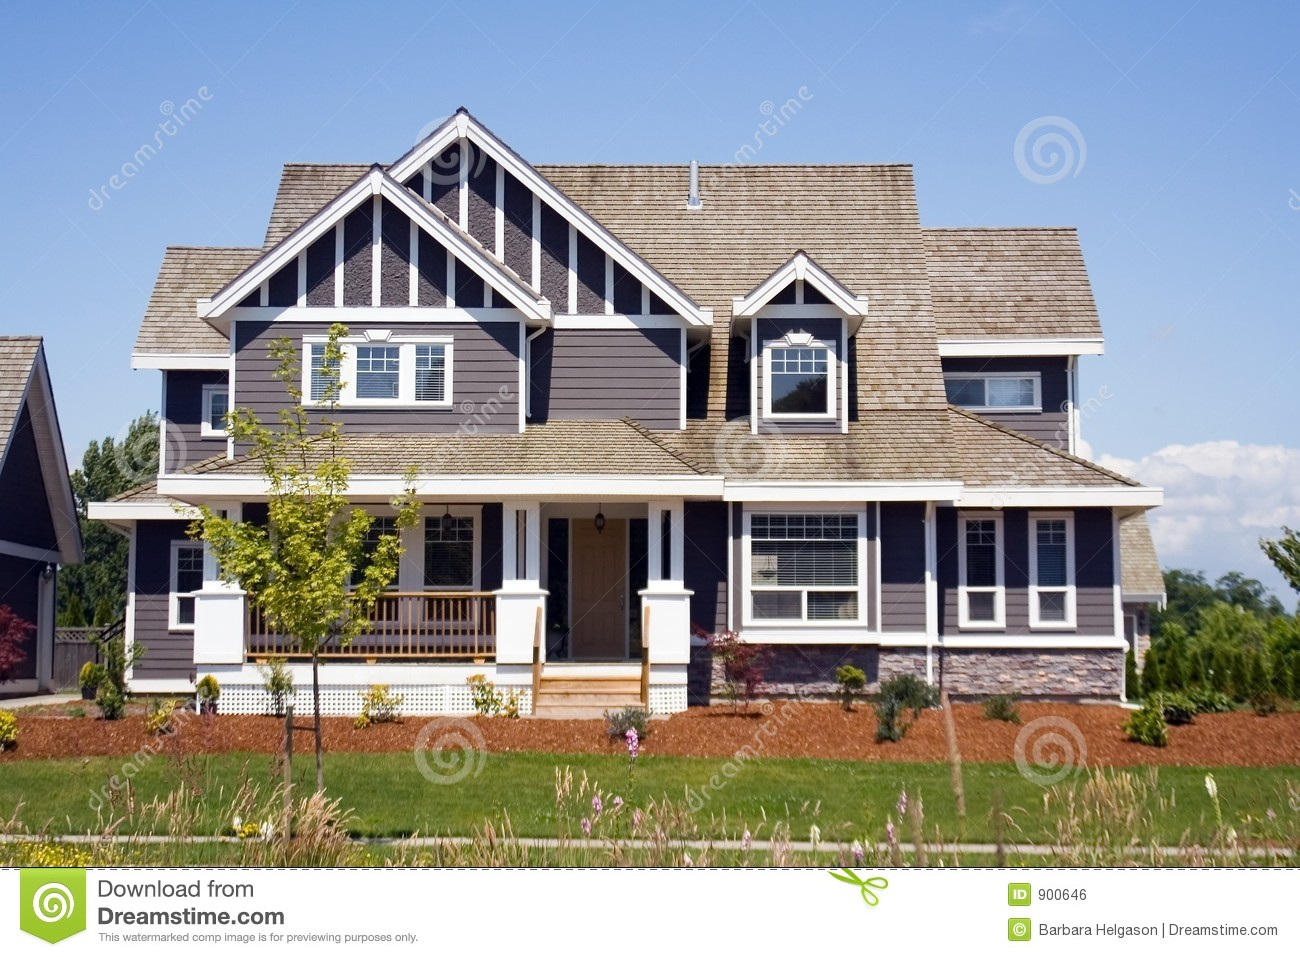 new large country house royalty free stock image image